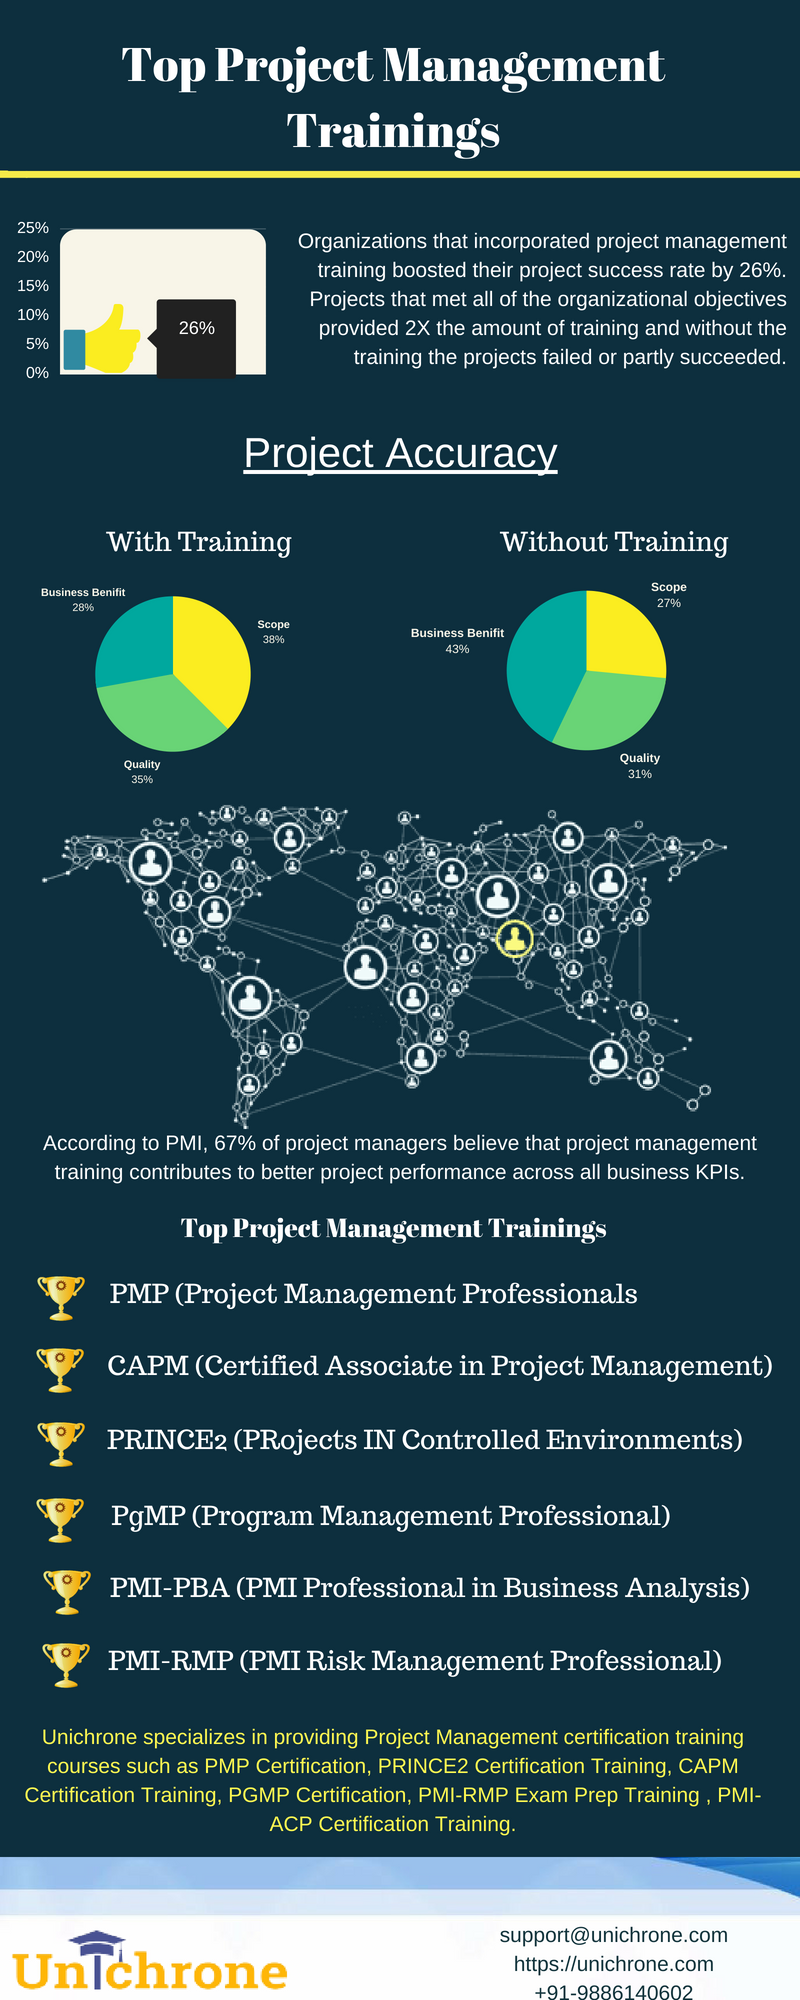 Top Project Management Training Courses